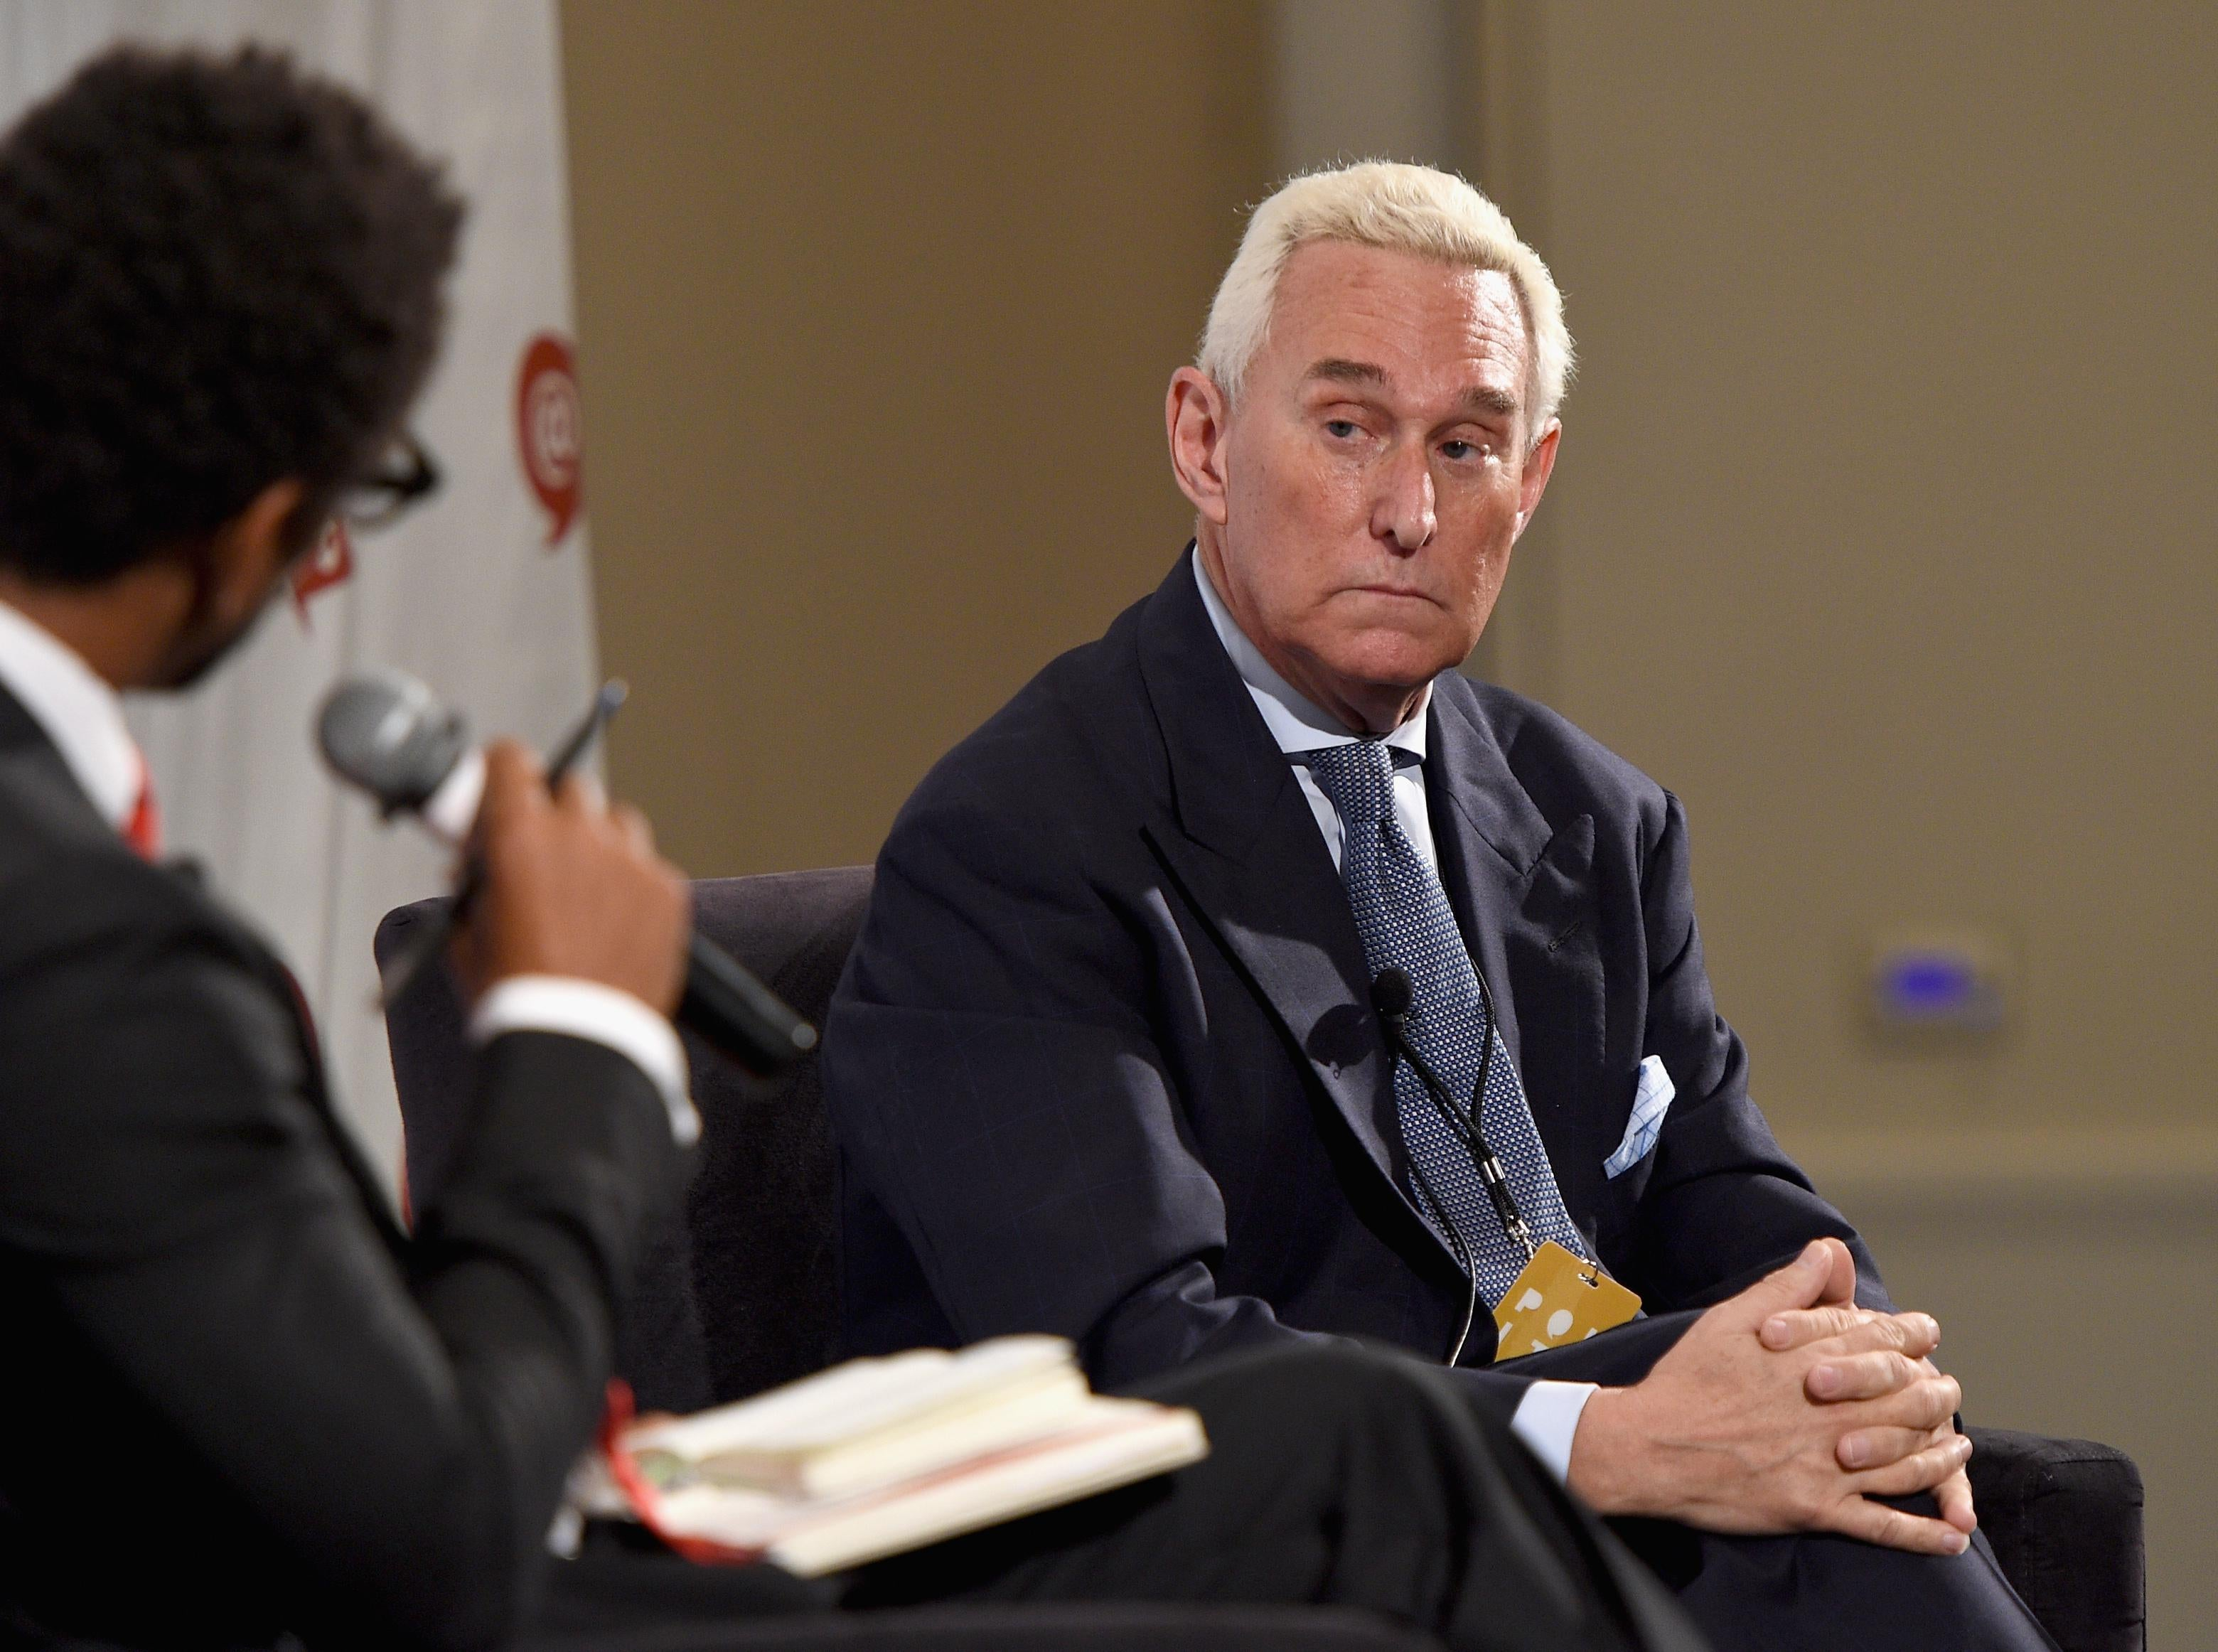 Roger Stone looks warily toward an interviewer holding a microphone.